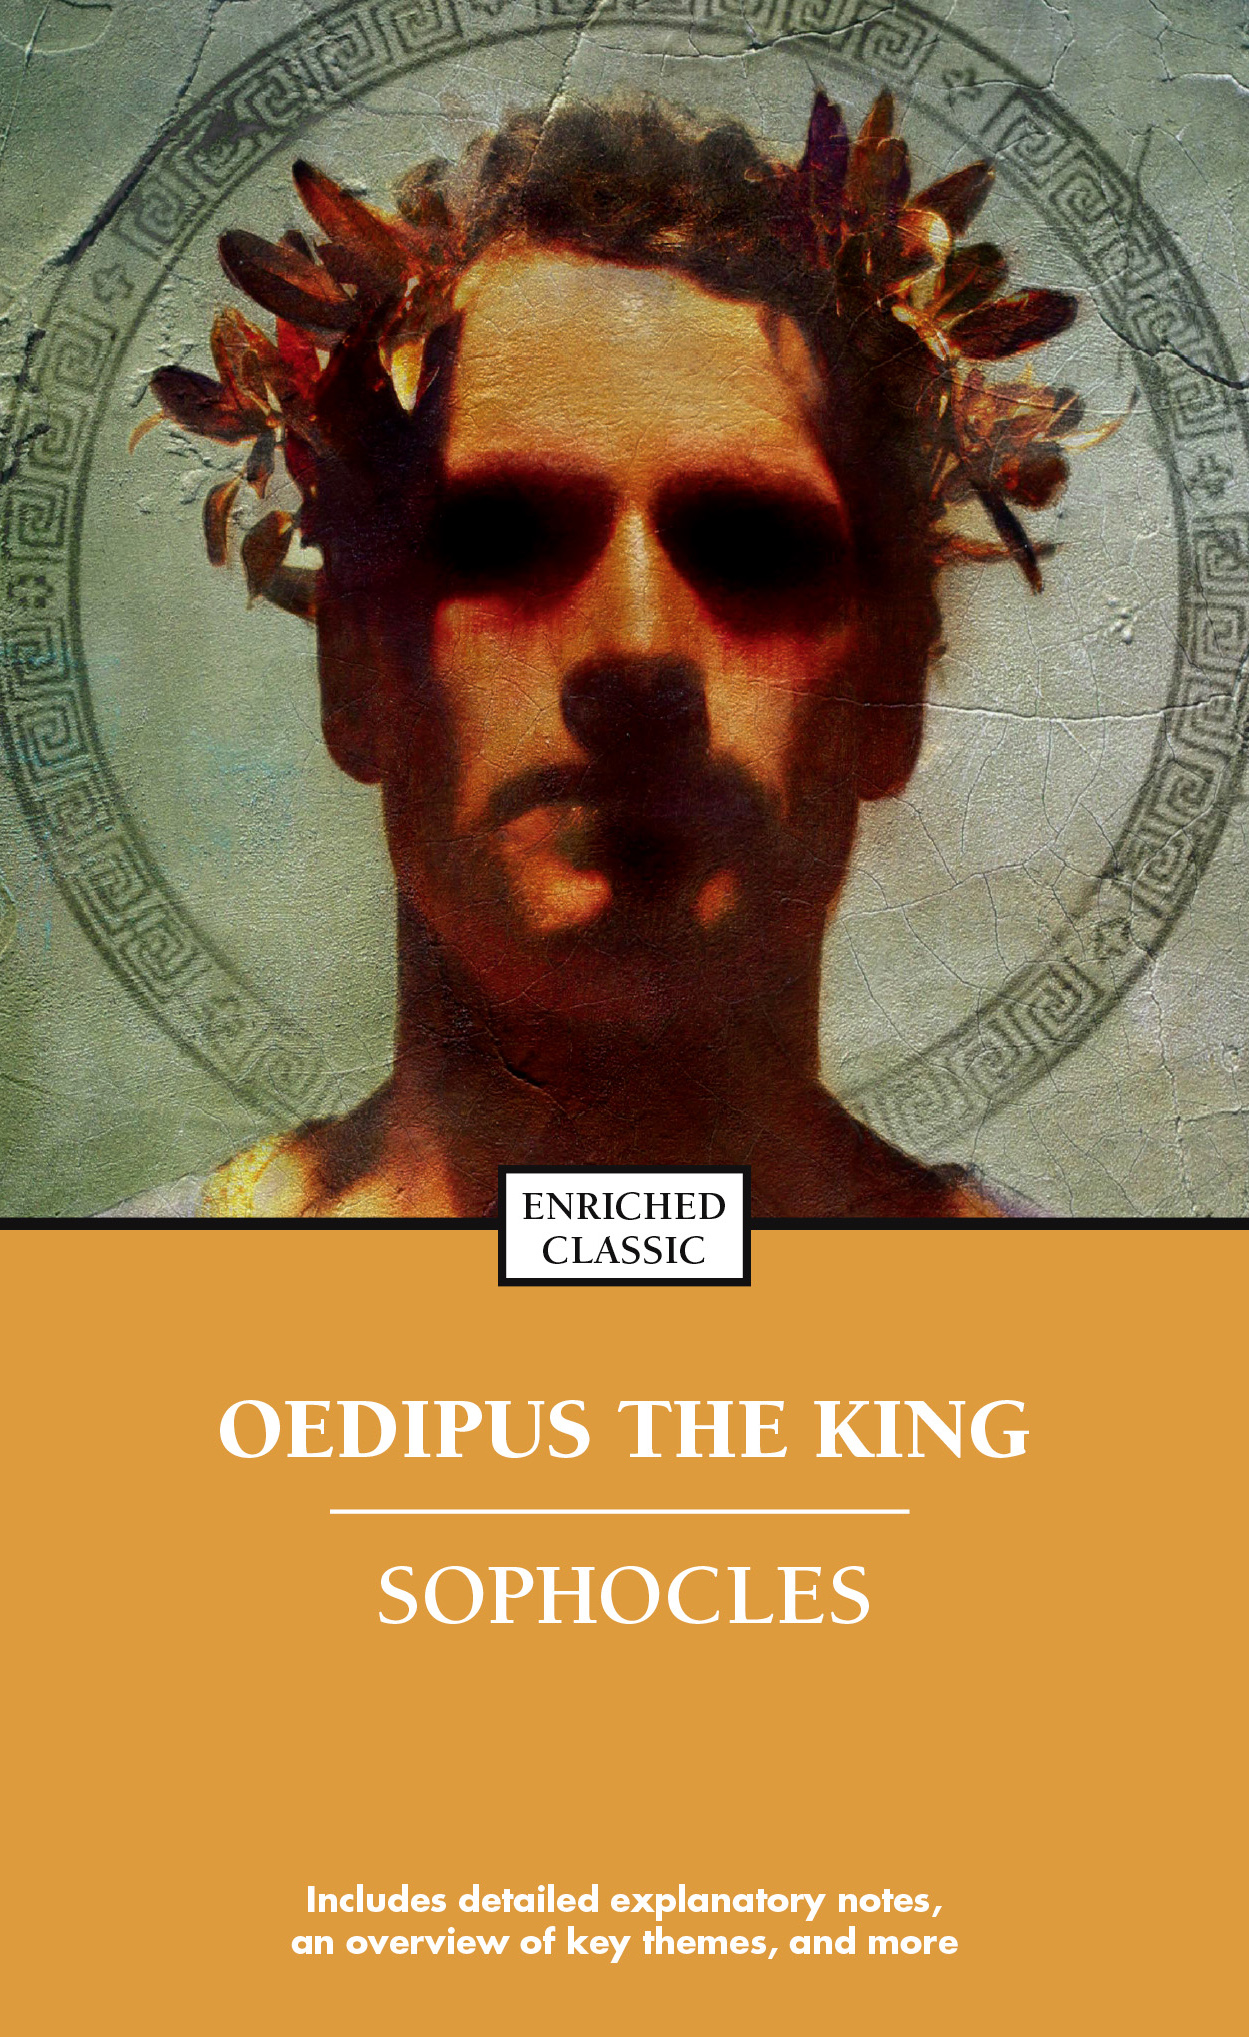 an analysis of oedipus and socrates In oedipus the king, the actor playing oedipus wore a mask showing him simply as a king, while in oedipus at colonus, oedipus appears in the mask of an old man as sophocles saw him — and as actors portrayed him — oedipus displayed no personality or individuality beyond his role in the legend.